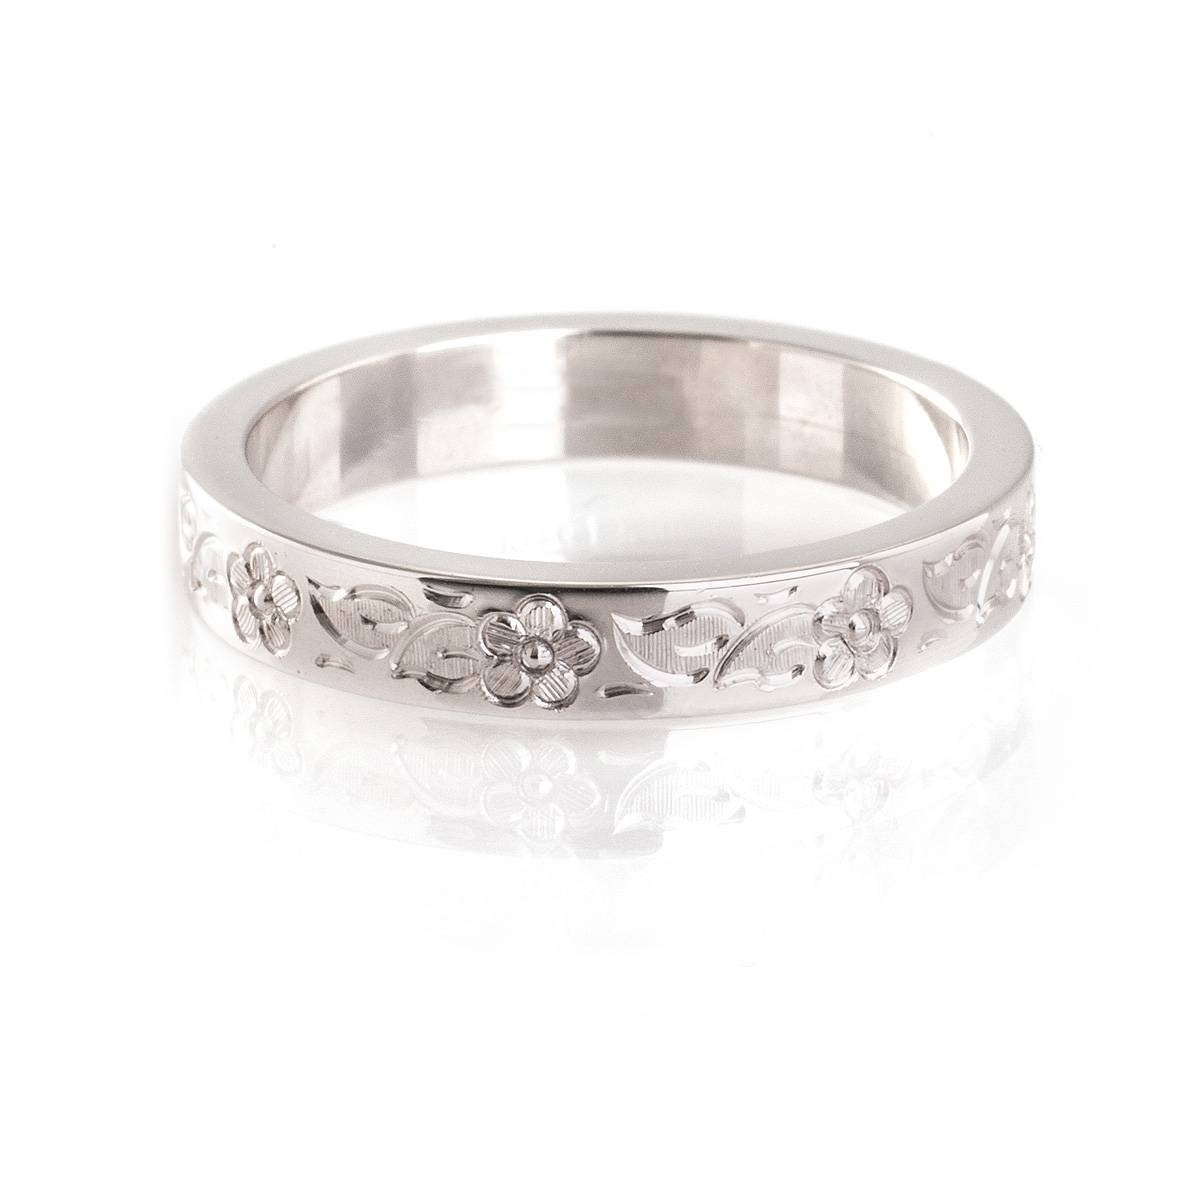 Featured Photo of Engravings On Wedding Rings